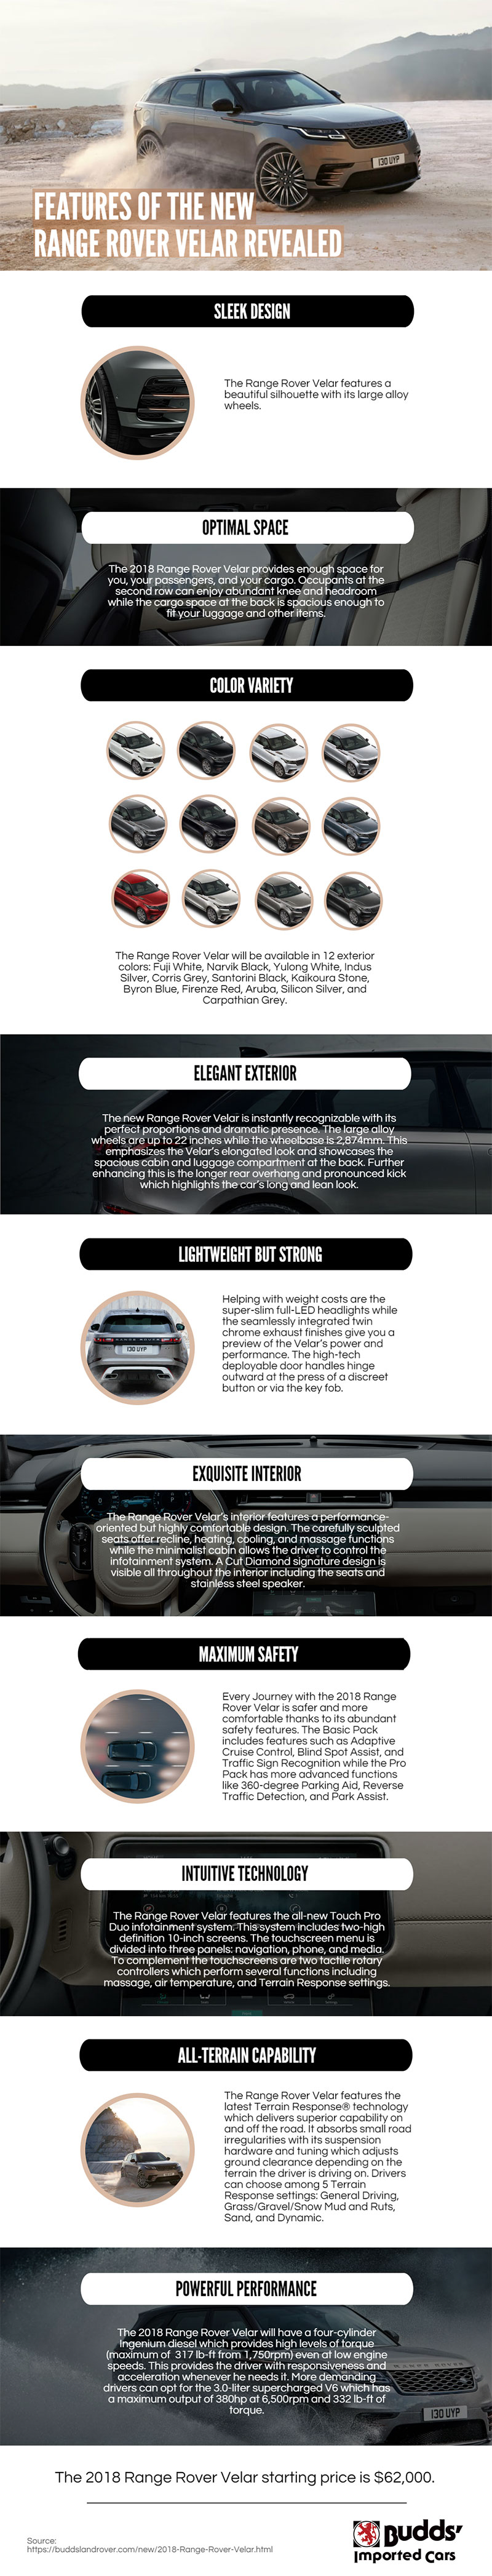 Infographic: Introducing the New Range Rover Velar